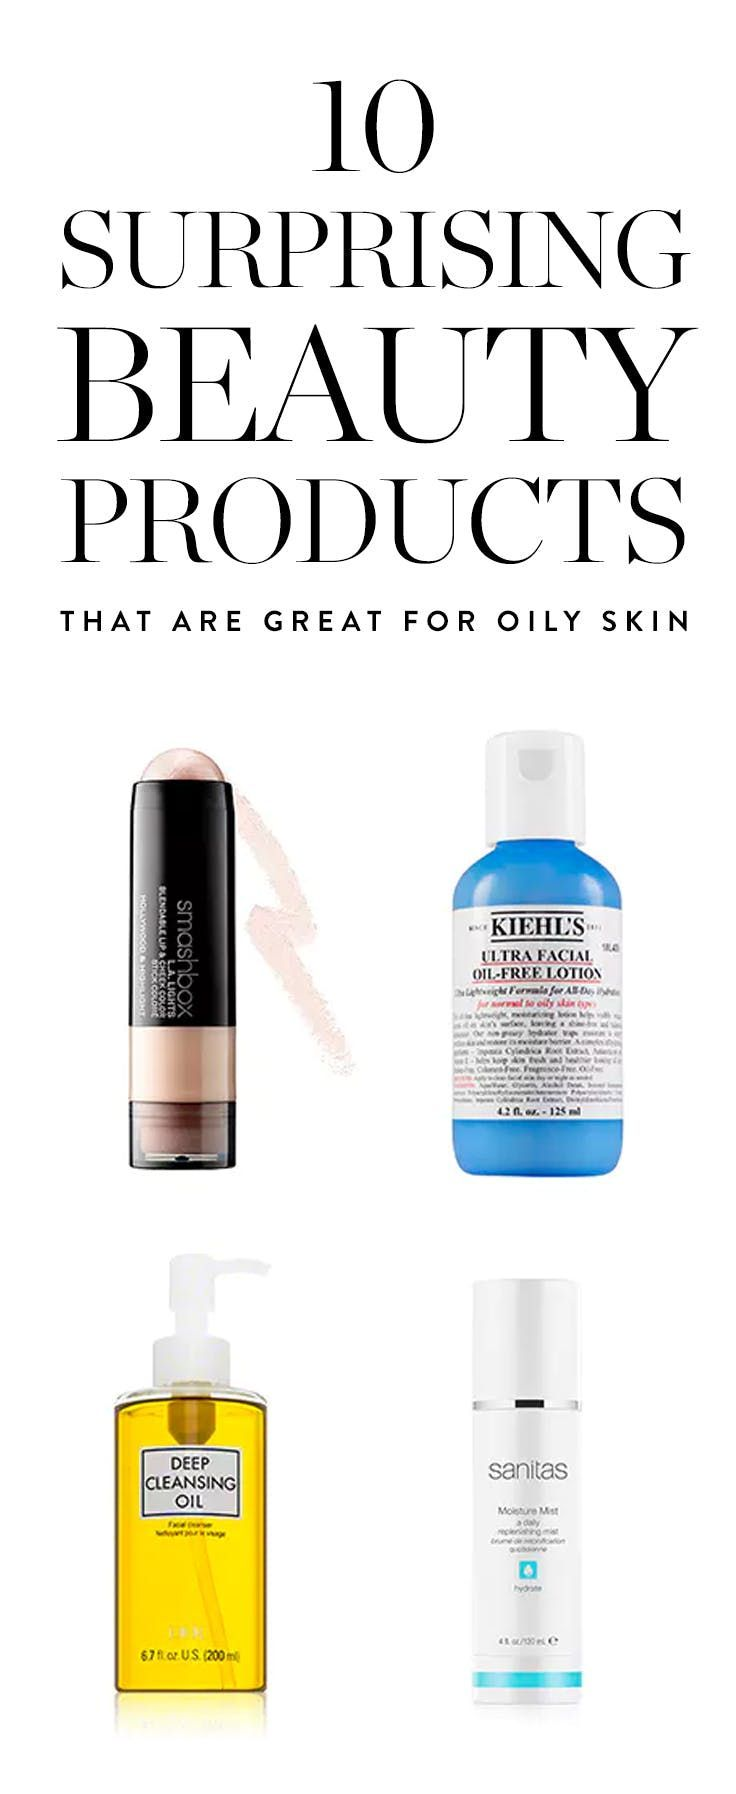 Beauty Products Women with Oily Skin Shouldn't Be Afraid to Use #purewow  #shoppable #skincare #beauty #WomensSkinCareBeautySecrets